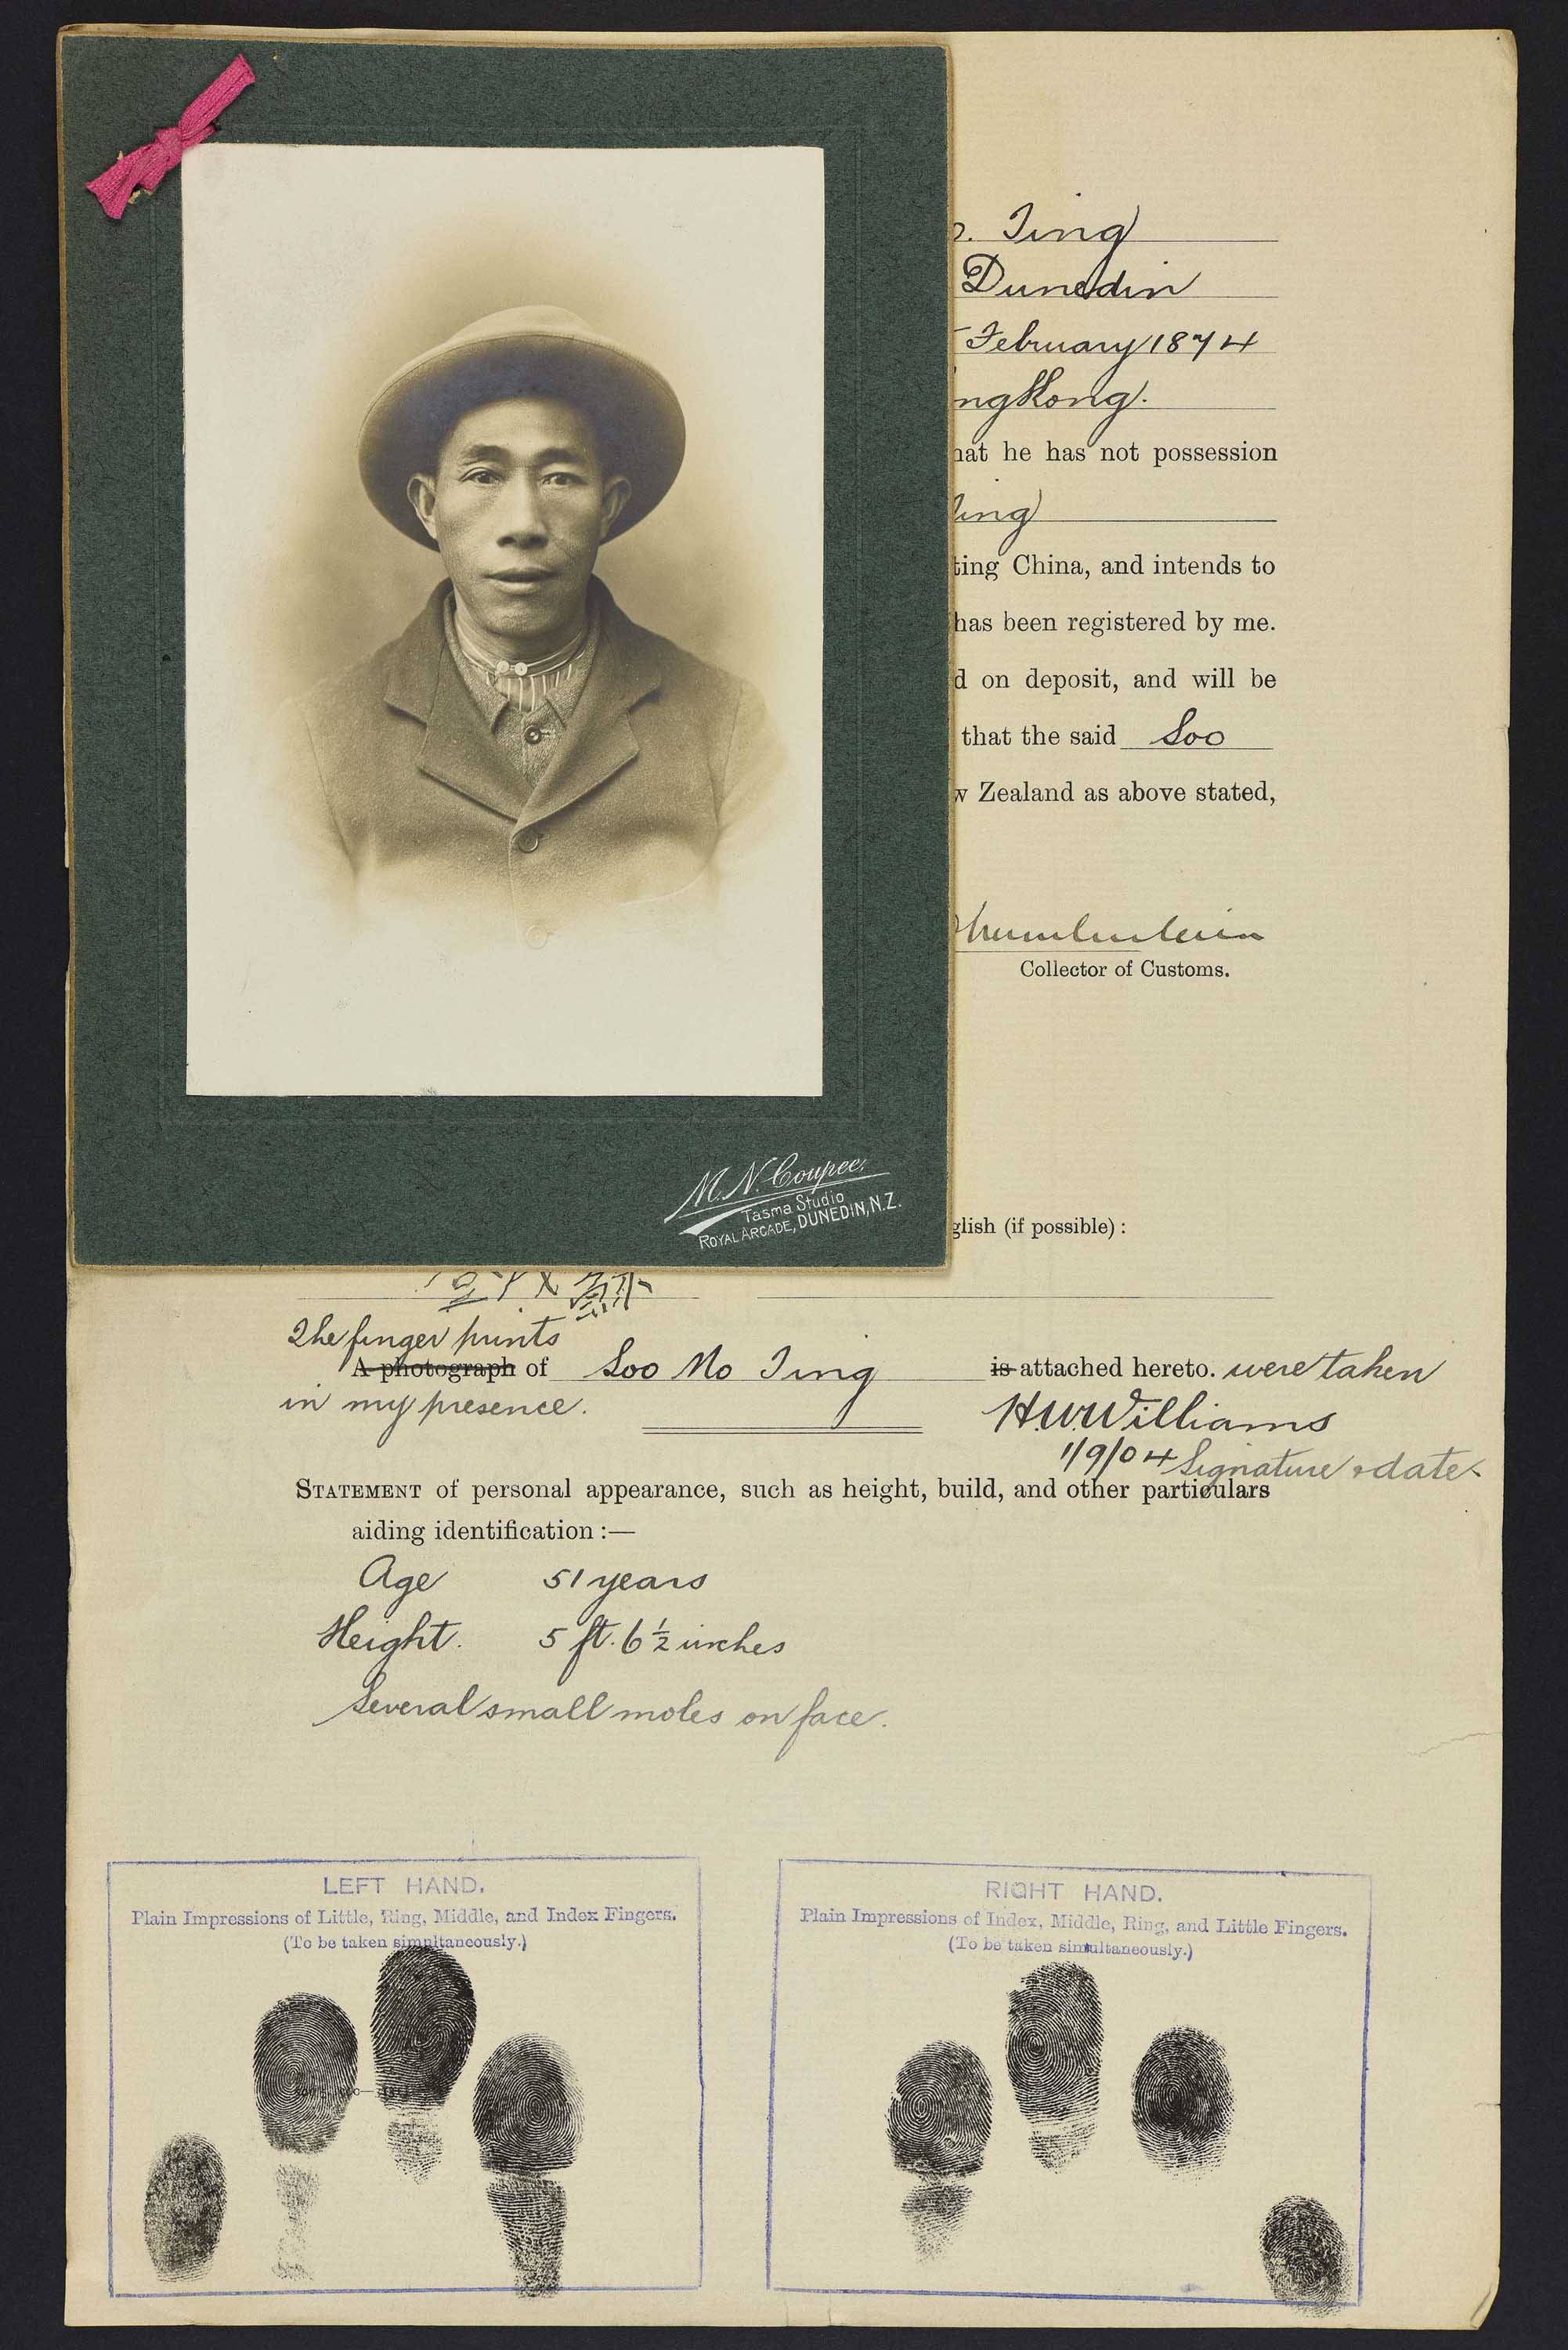 Sepia photo portrait of a Chinese man in a wide brimmed hat pinned to his immigration papers